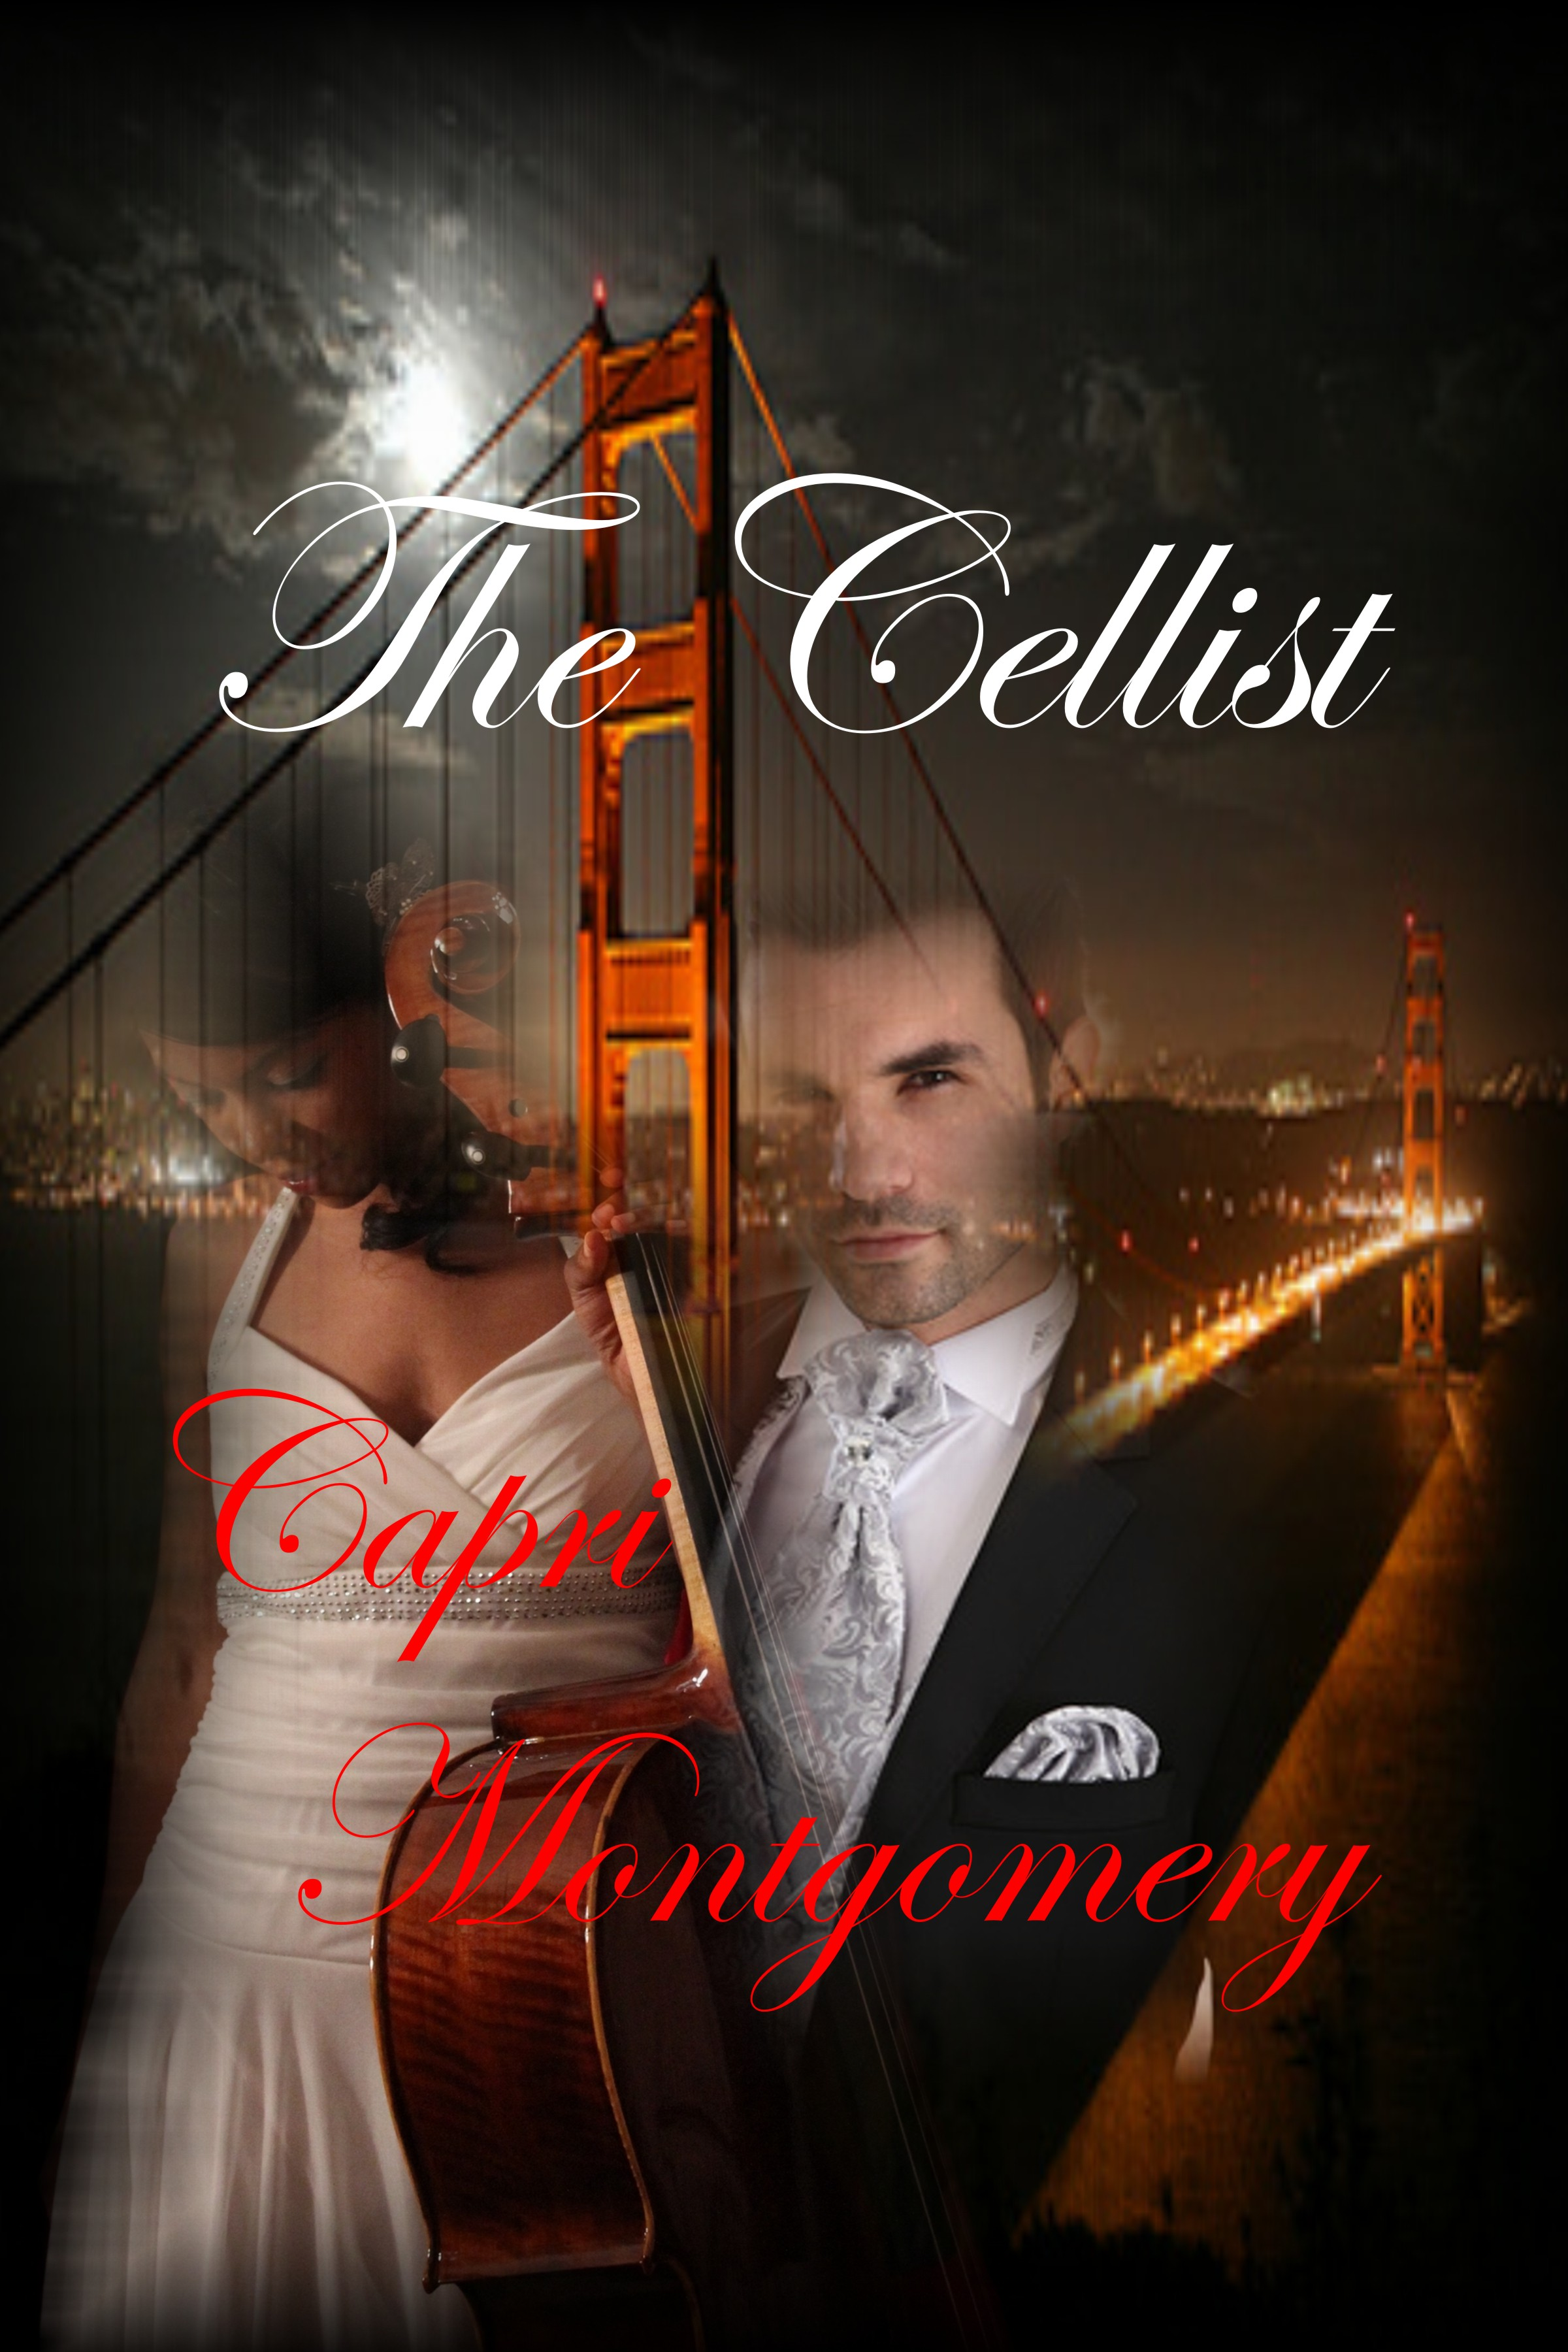 The Cellist Book Cover